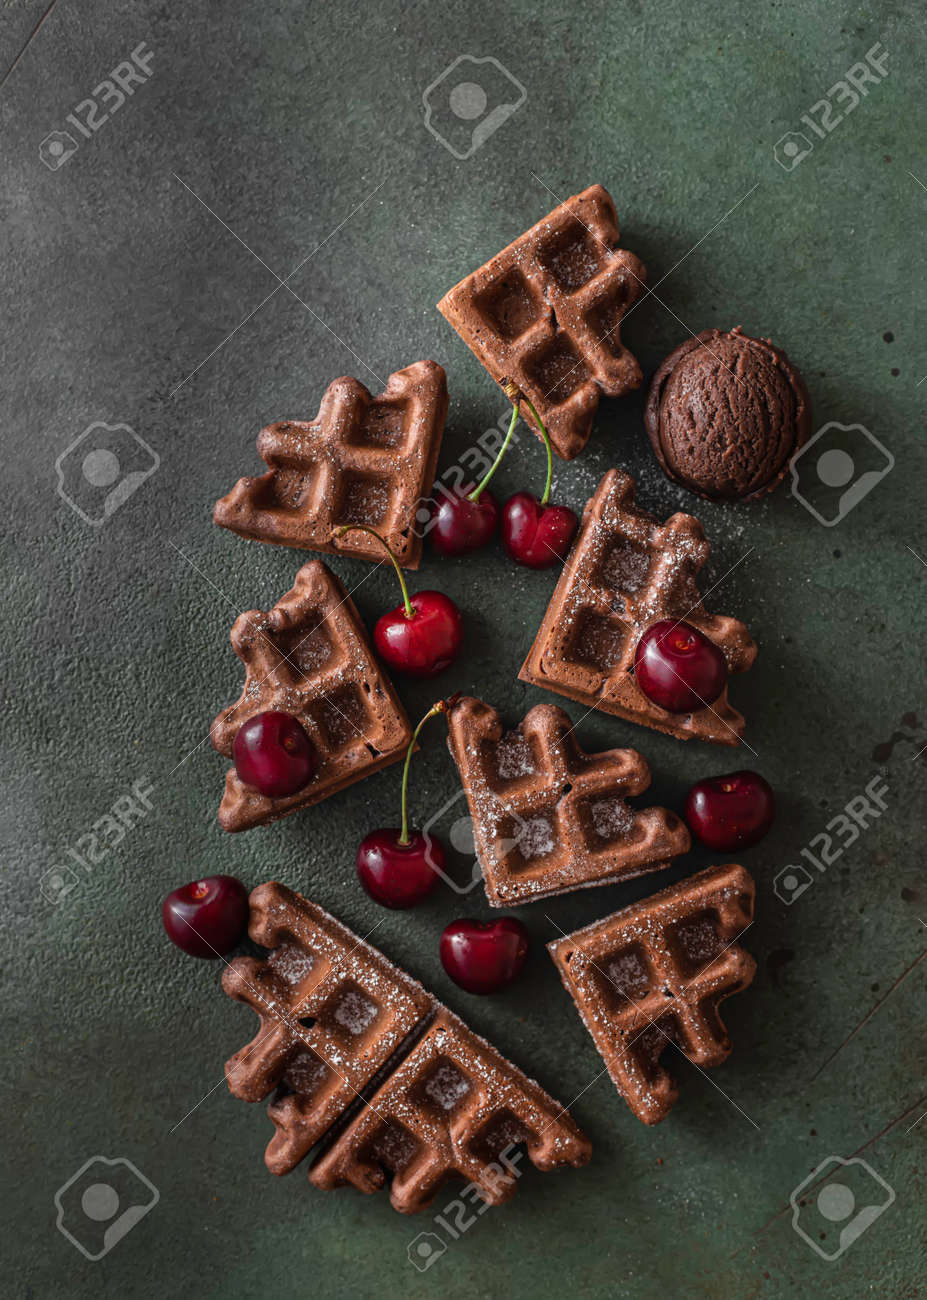 Homemade chocolate waffles with berries and chocolate ice cream. Delicious dessert or breakfast. Close-up - 171890470